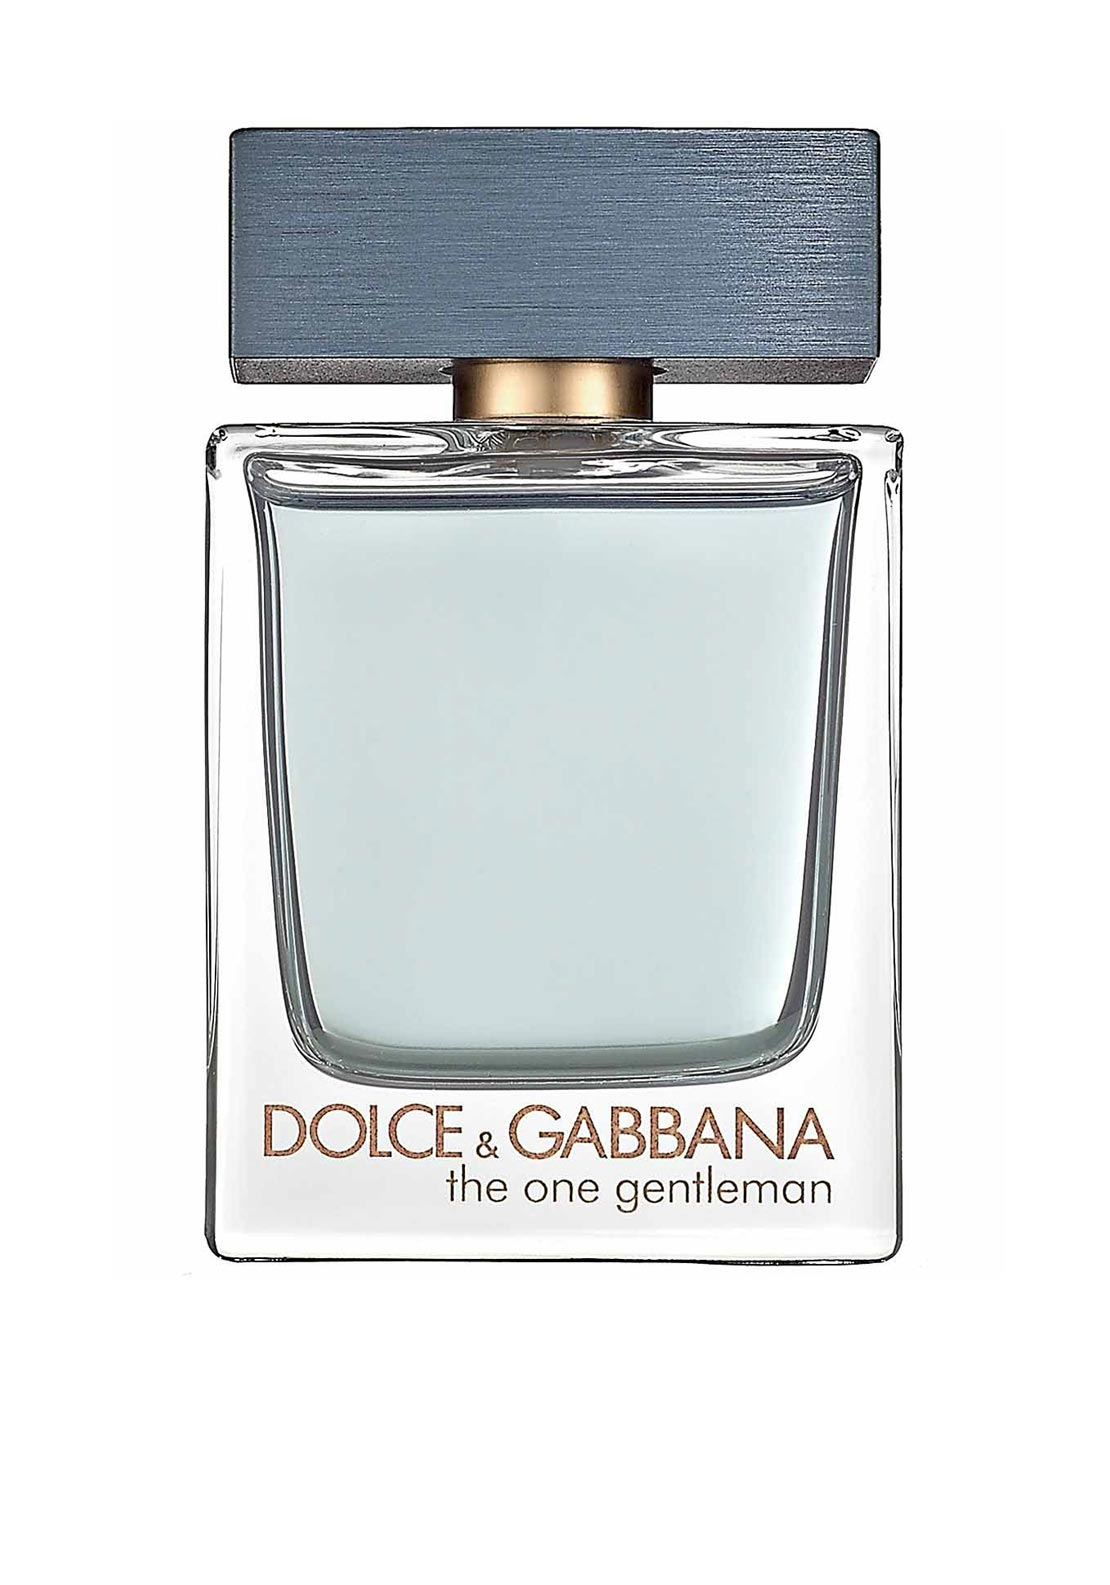 Dolce & Gabbana The One Gentleman Eau de Toilette, 100ml